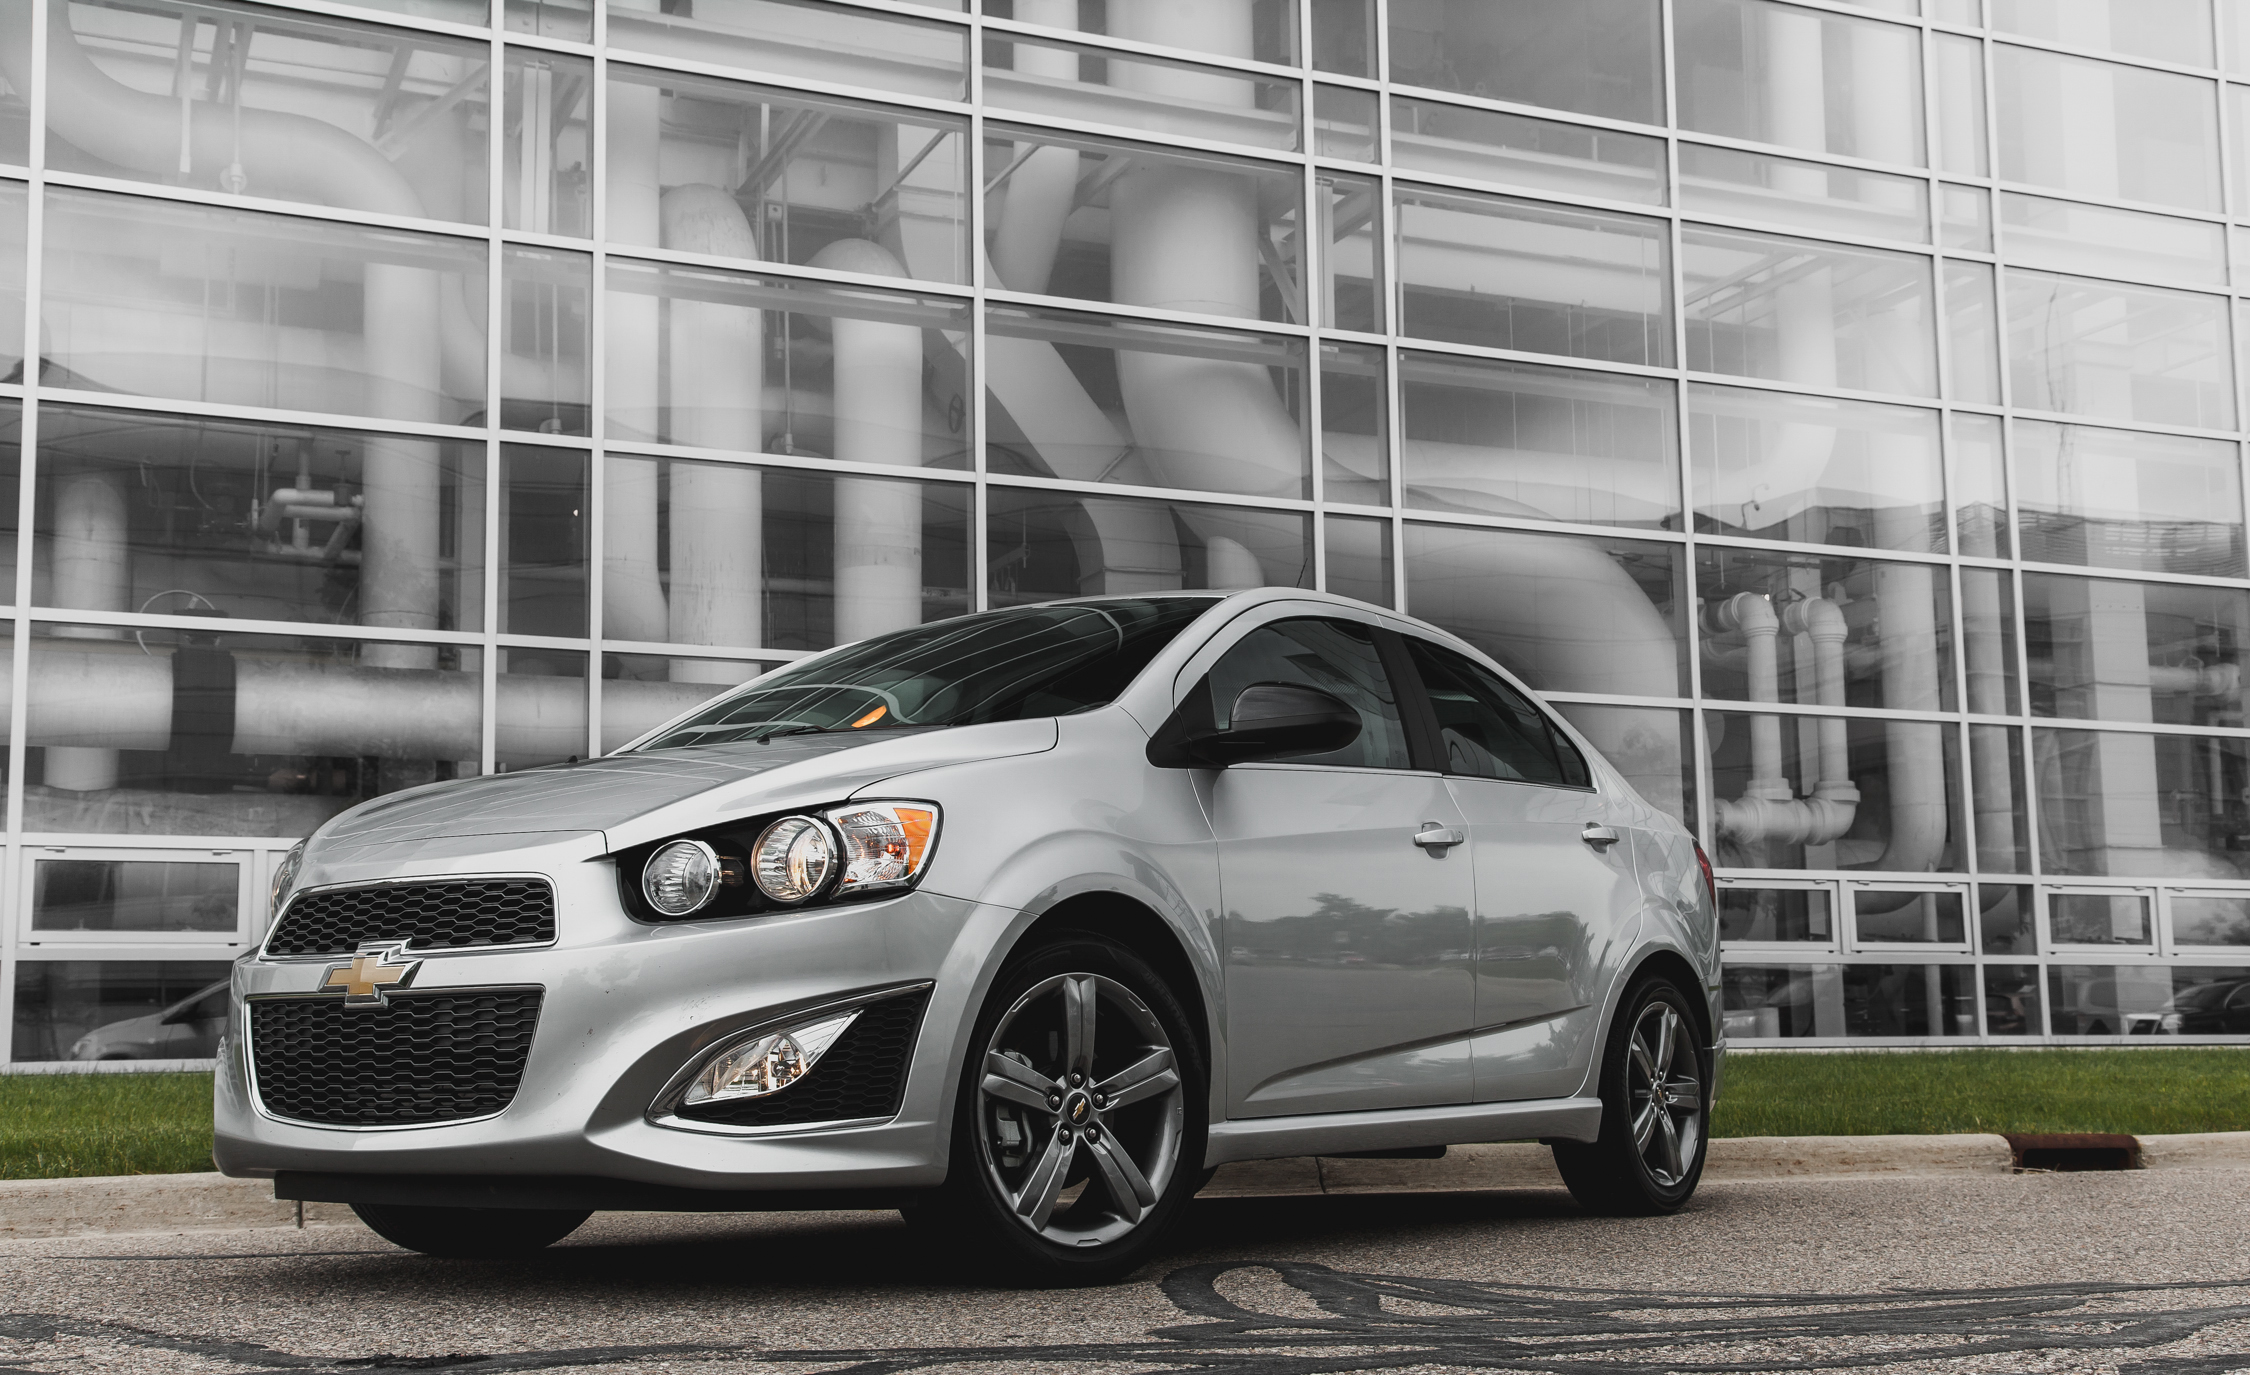 2014 Chevrolet Sonic RS Sedan (Photo 8 of 27)